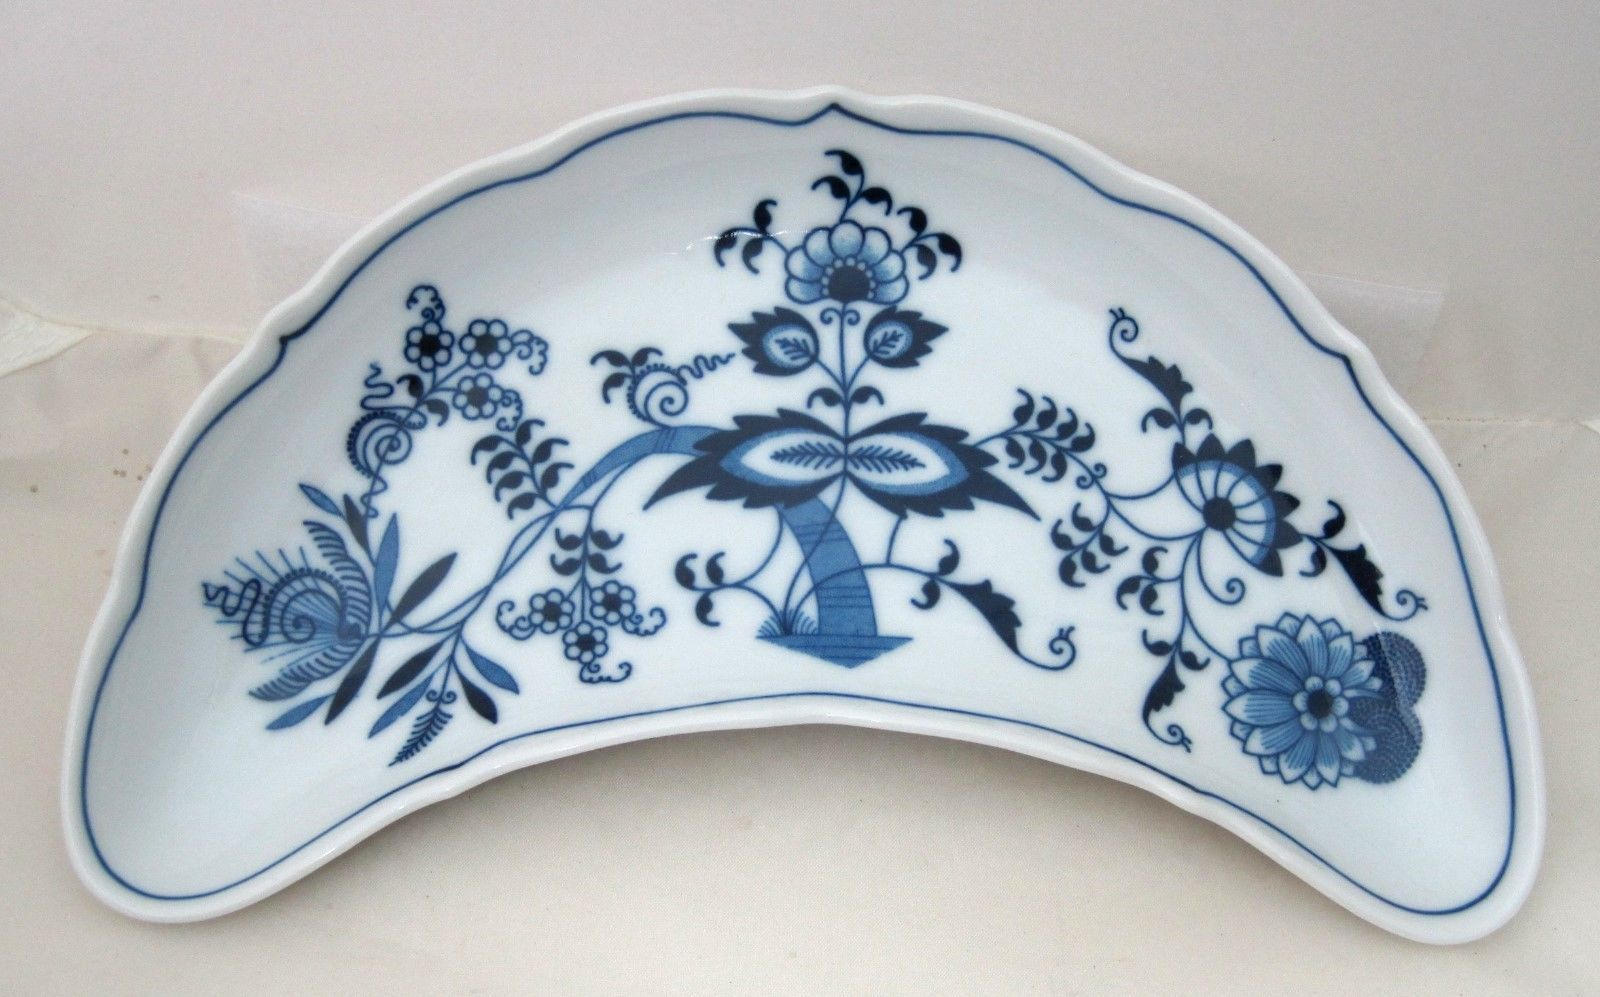 Primary image for Blue Danube Japan Crescent Salad Plate 9 Inch 1951-2000 In Great Shape